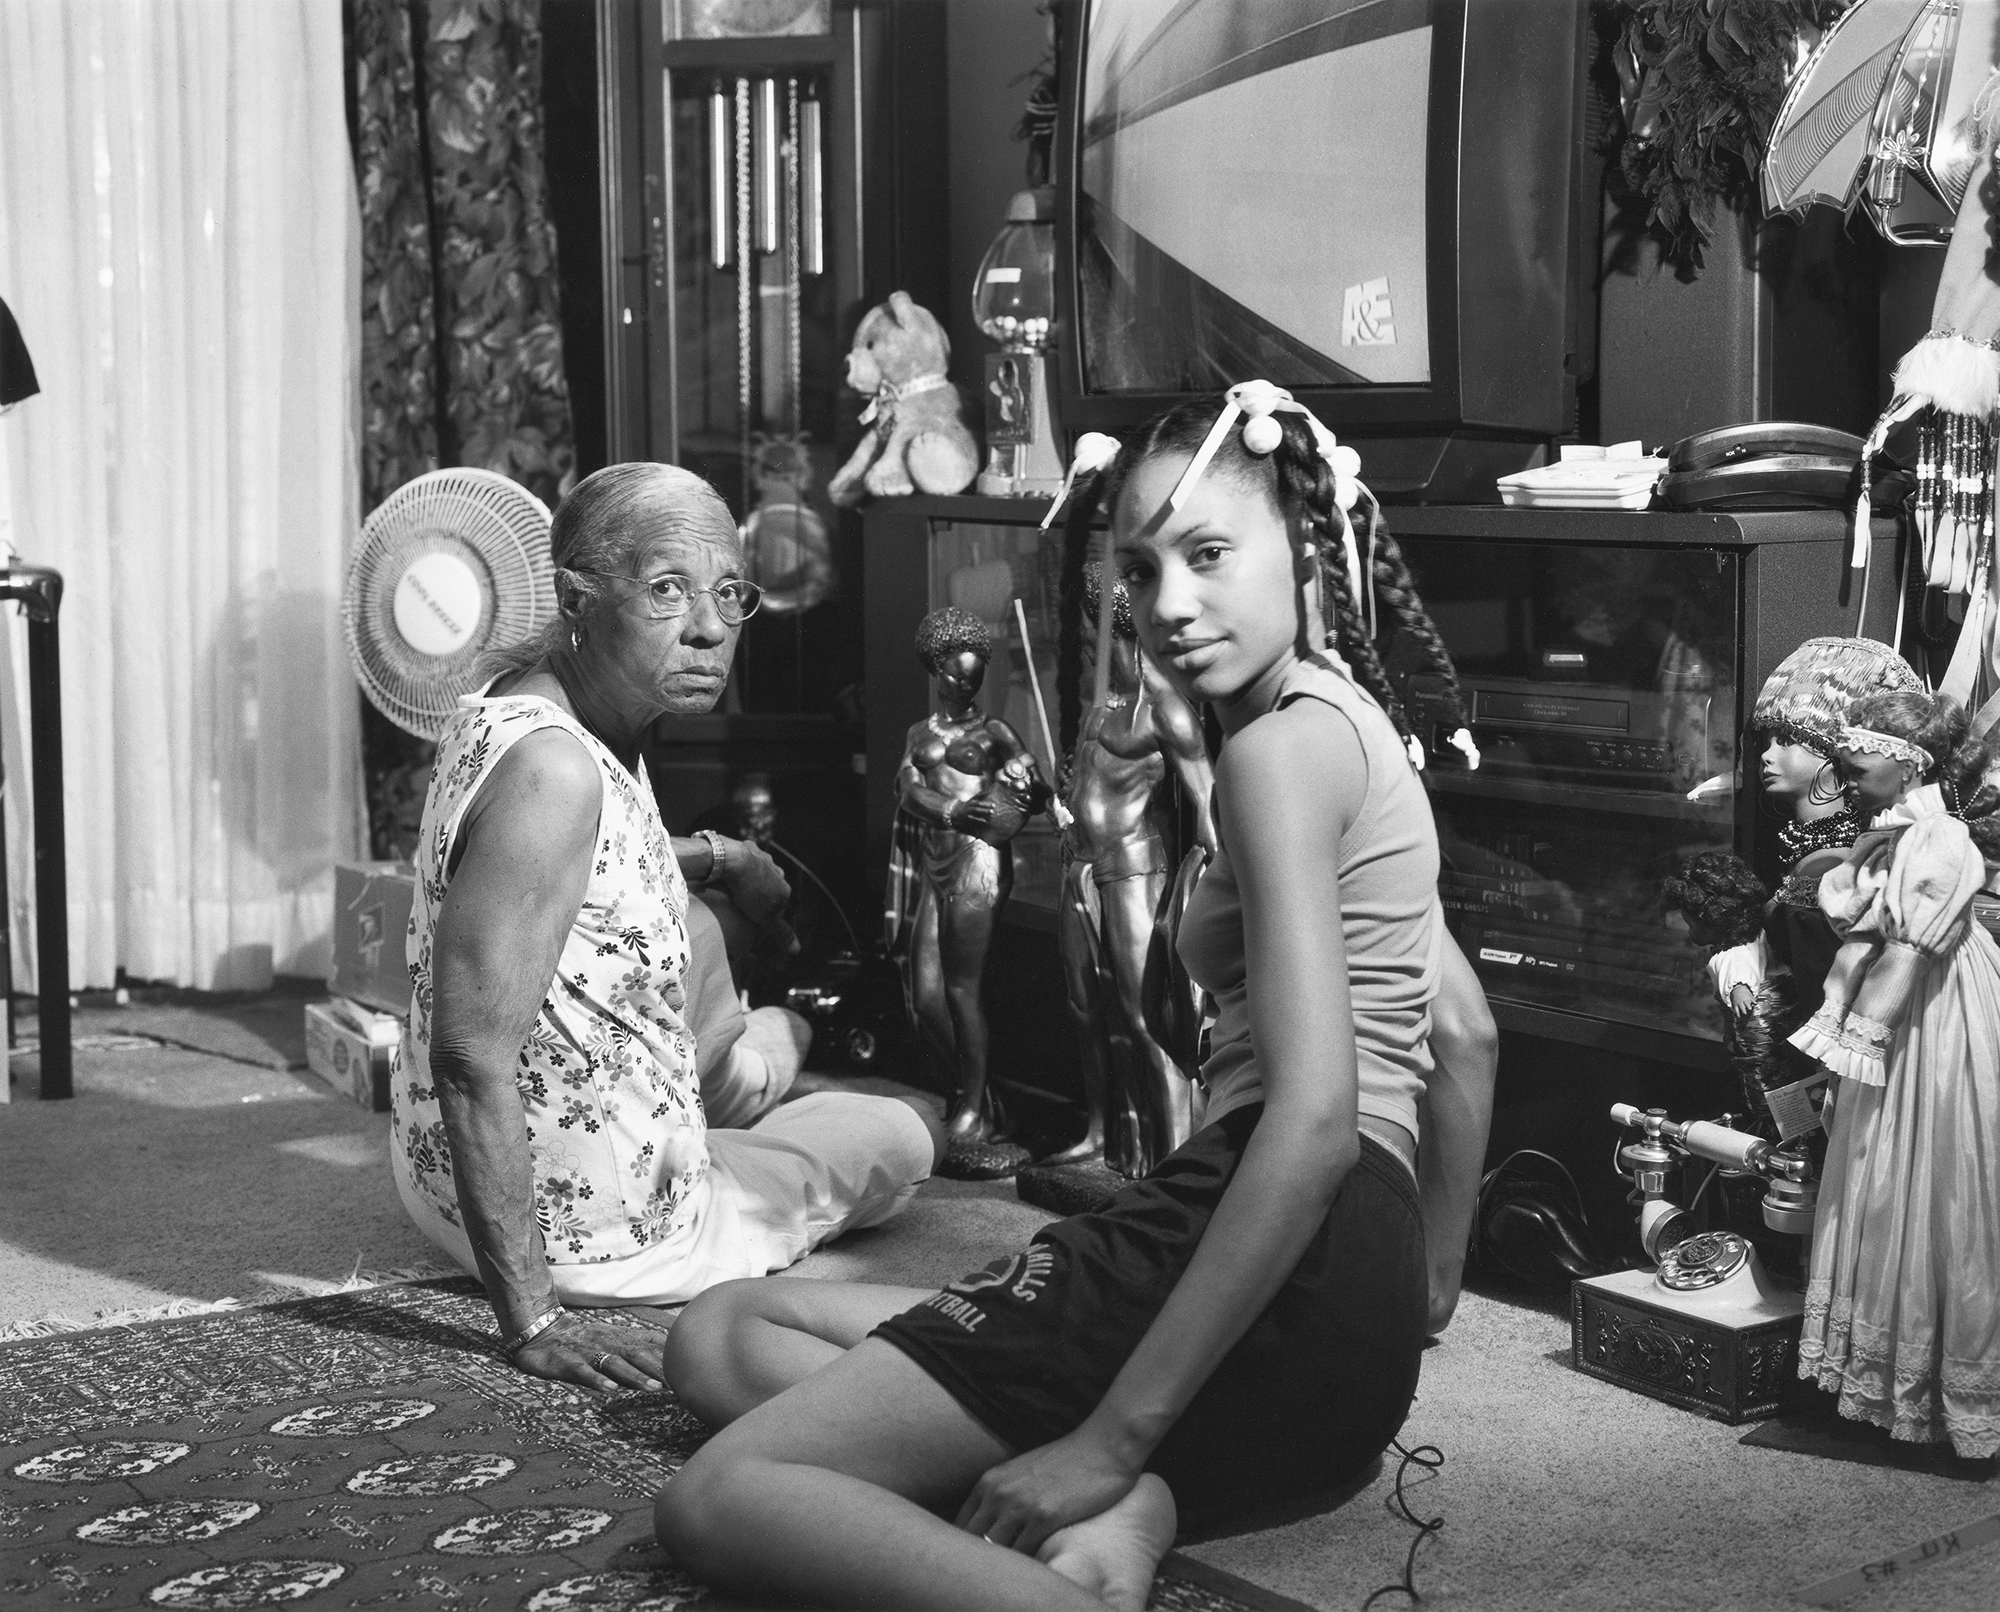 Photography on the Verge of Disaster – A New Way to Look at the Work of LaToya Ruby Frazier